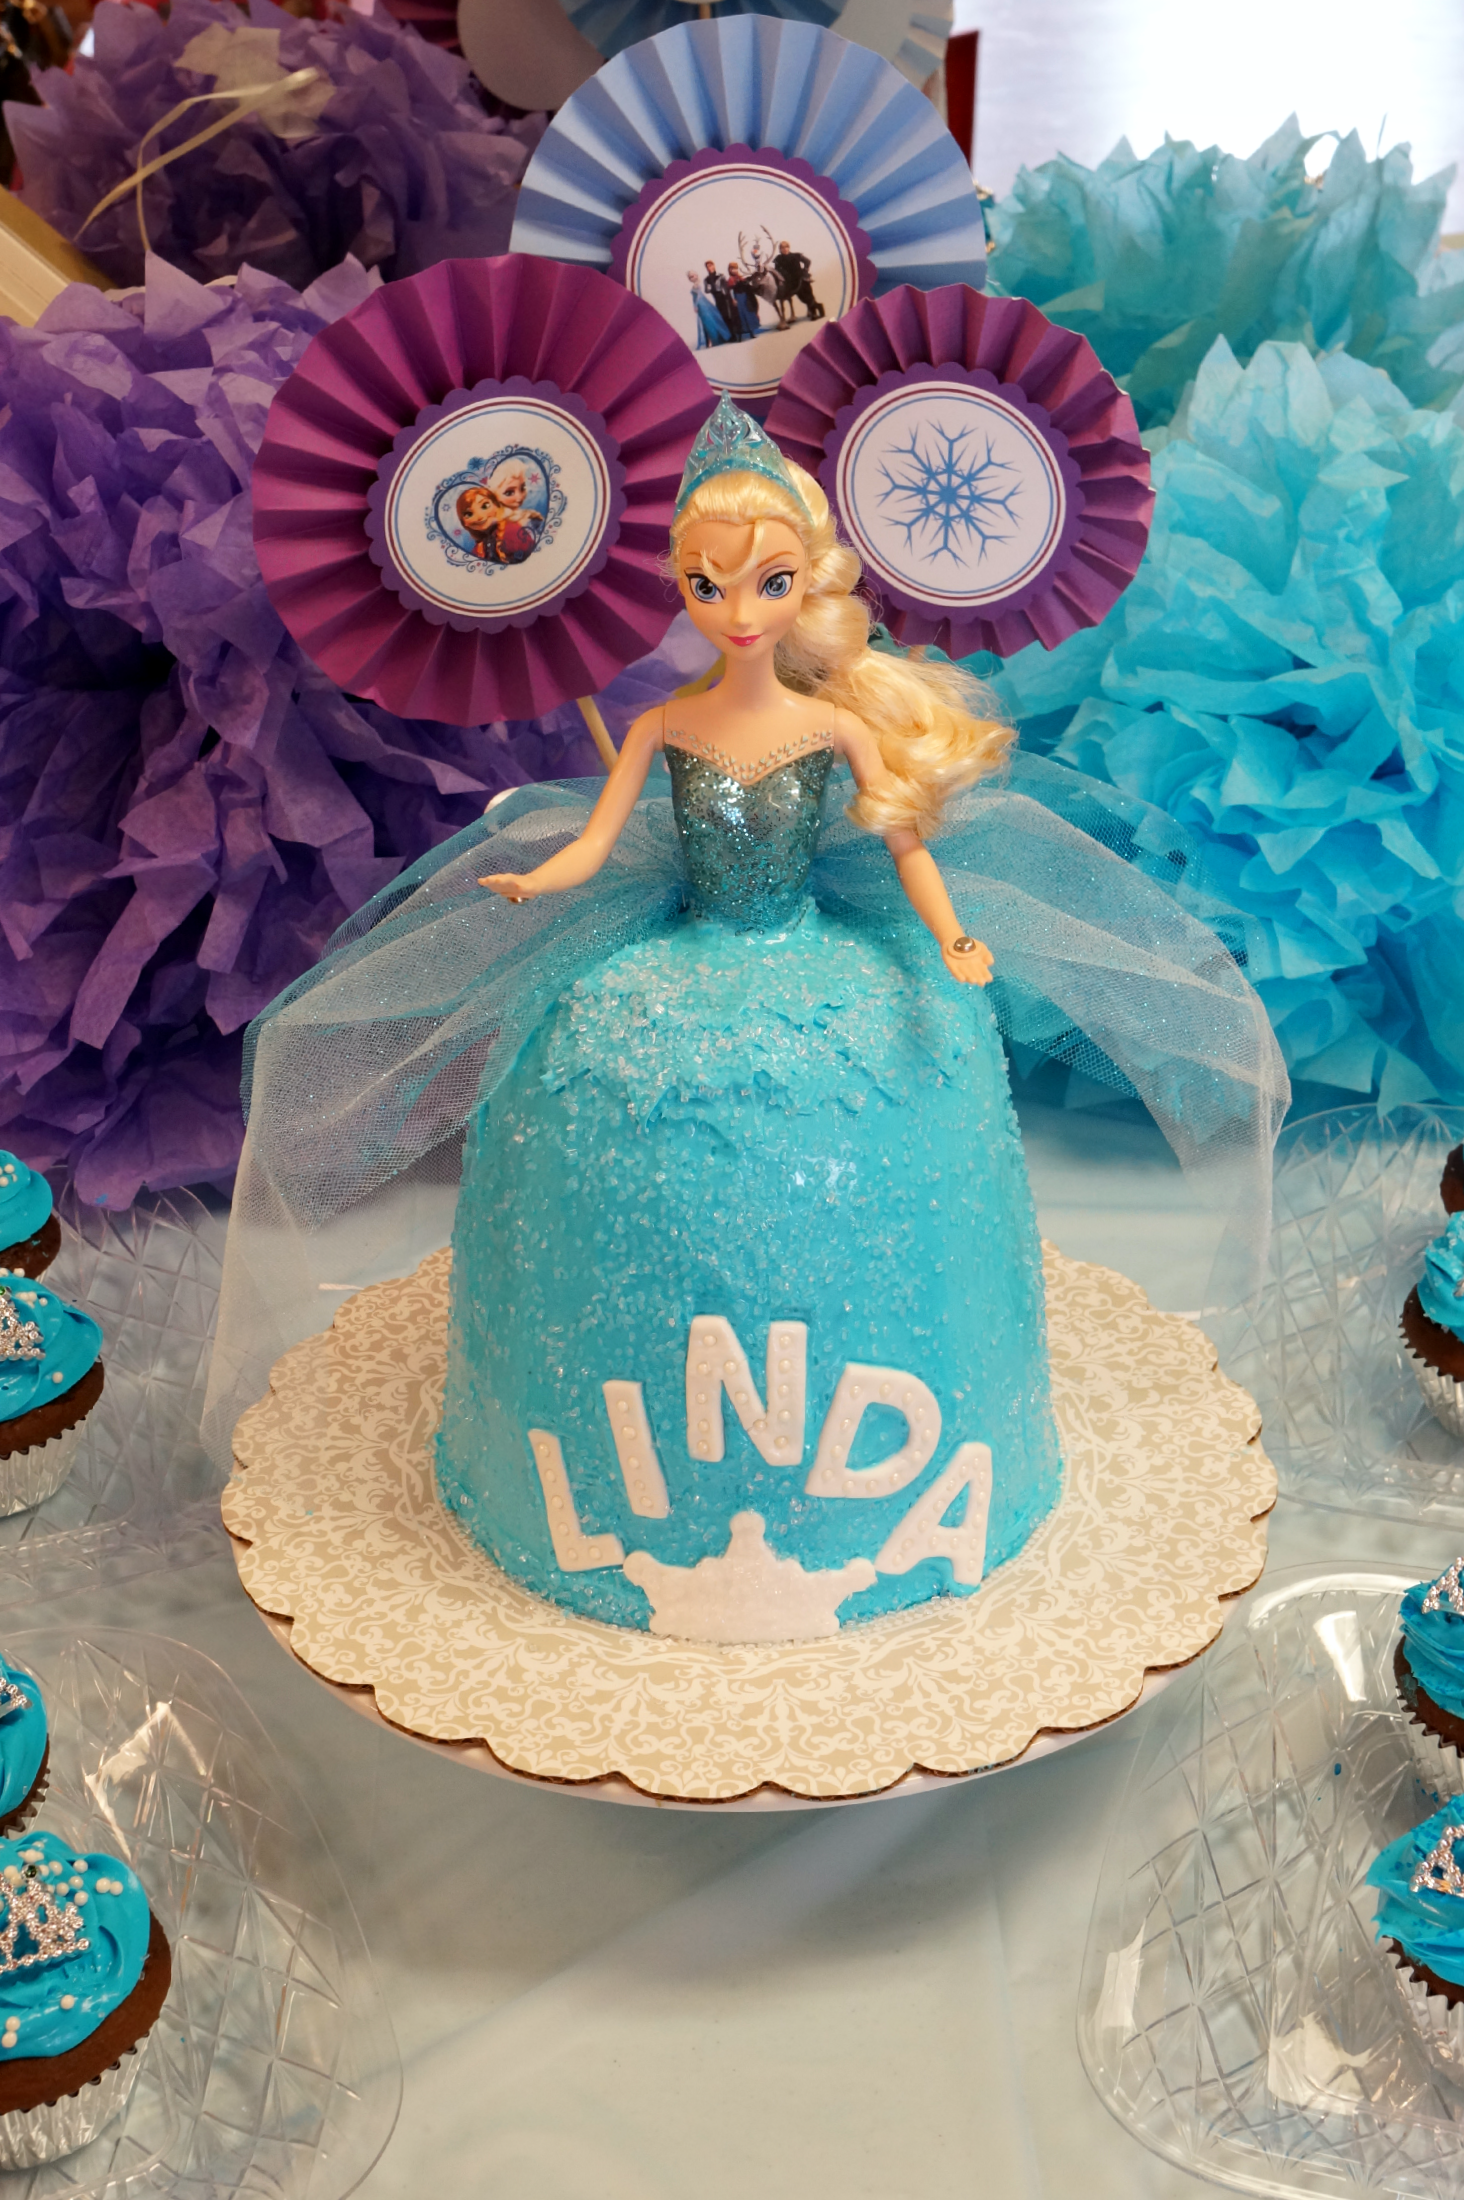 Sensational Queen Elsa Frozen Birthday Cake The Baking Fairy Personalised Birthday Cards Paralily Jamesorg